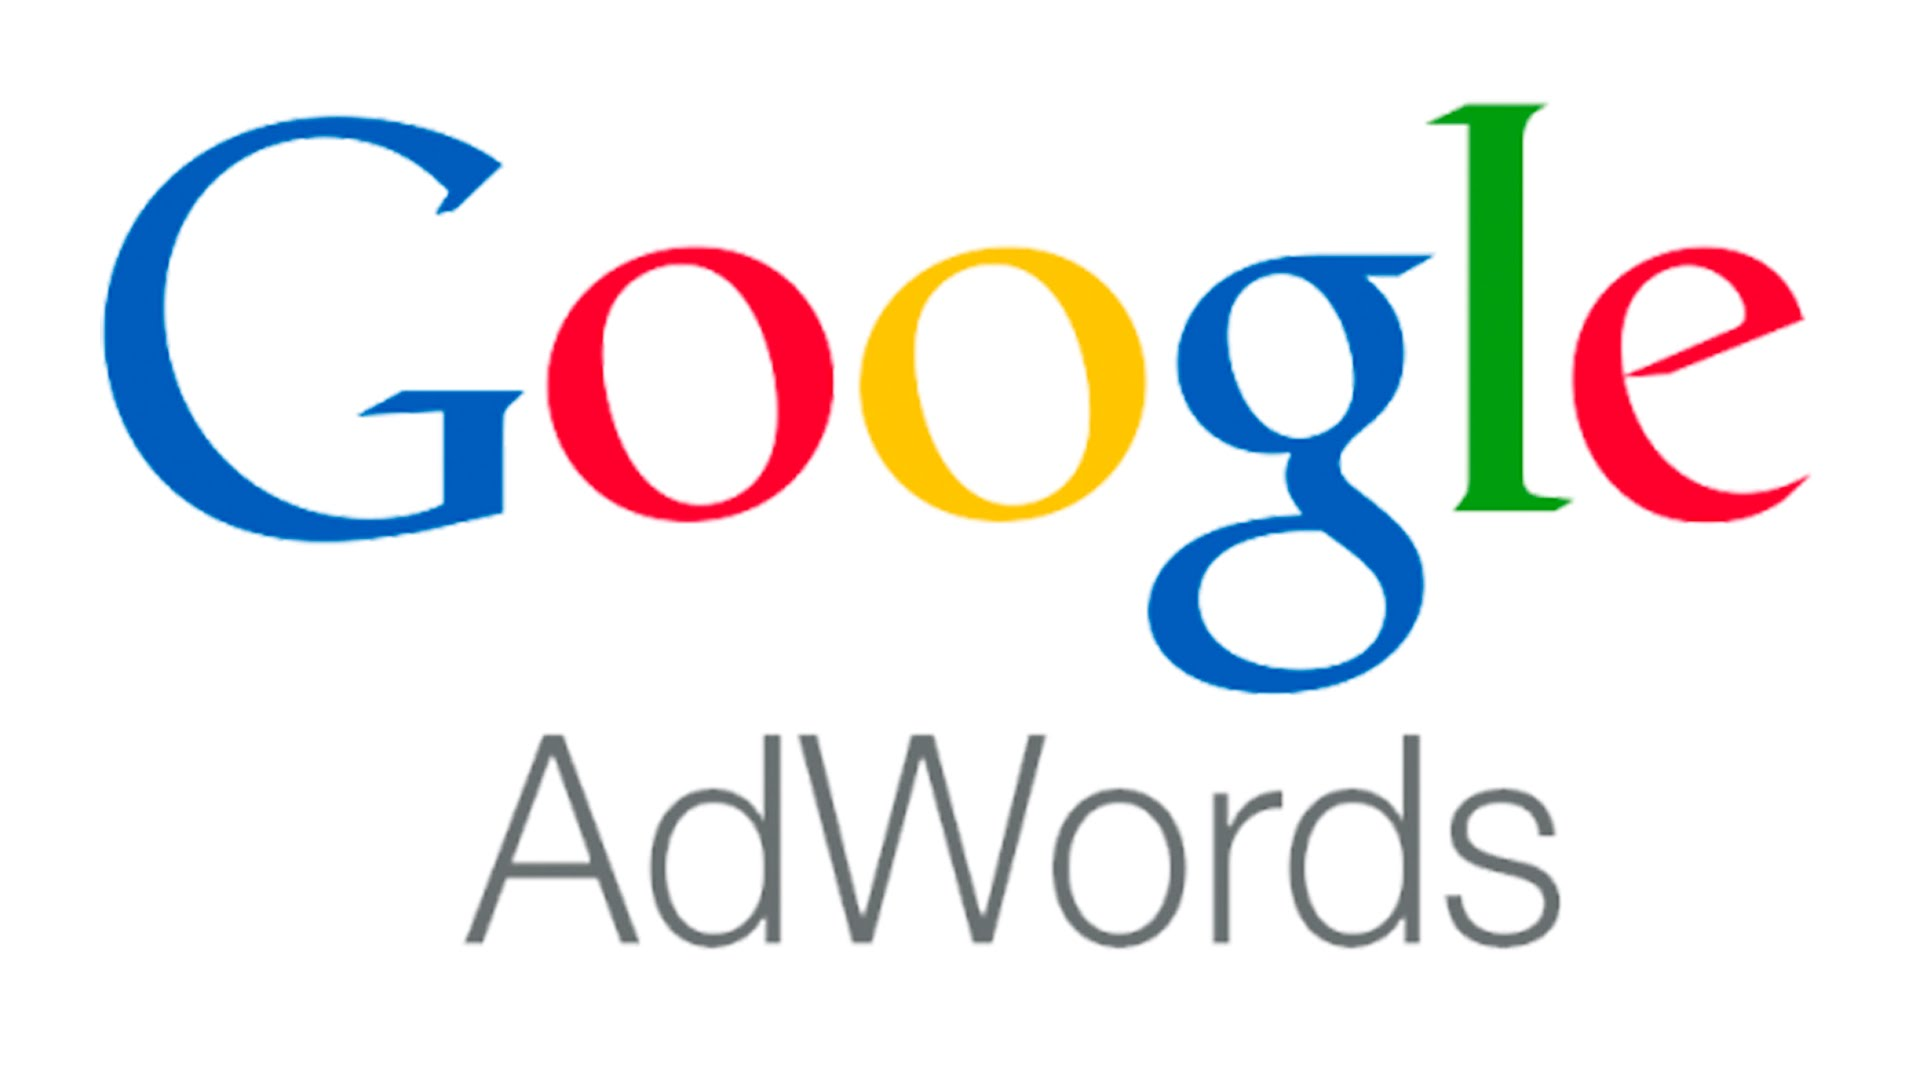 New Google Adwords Interface to be Rolled Out!